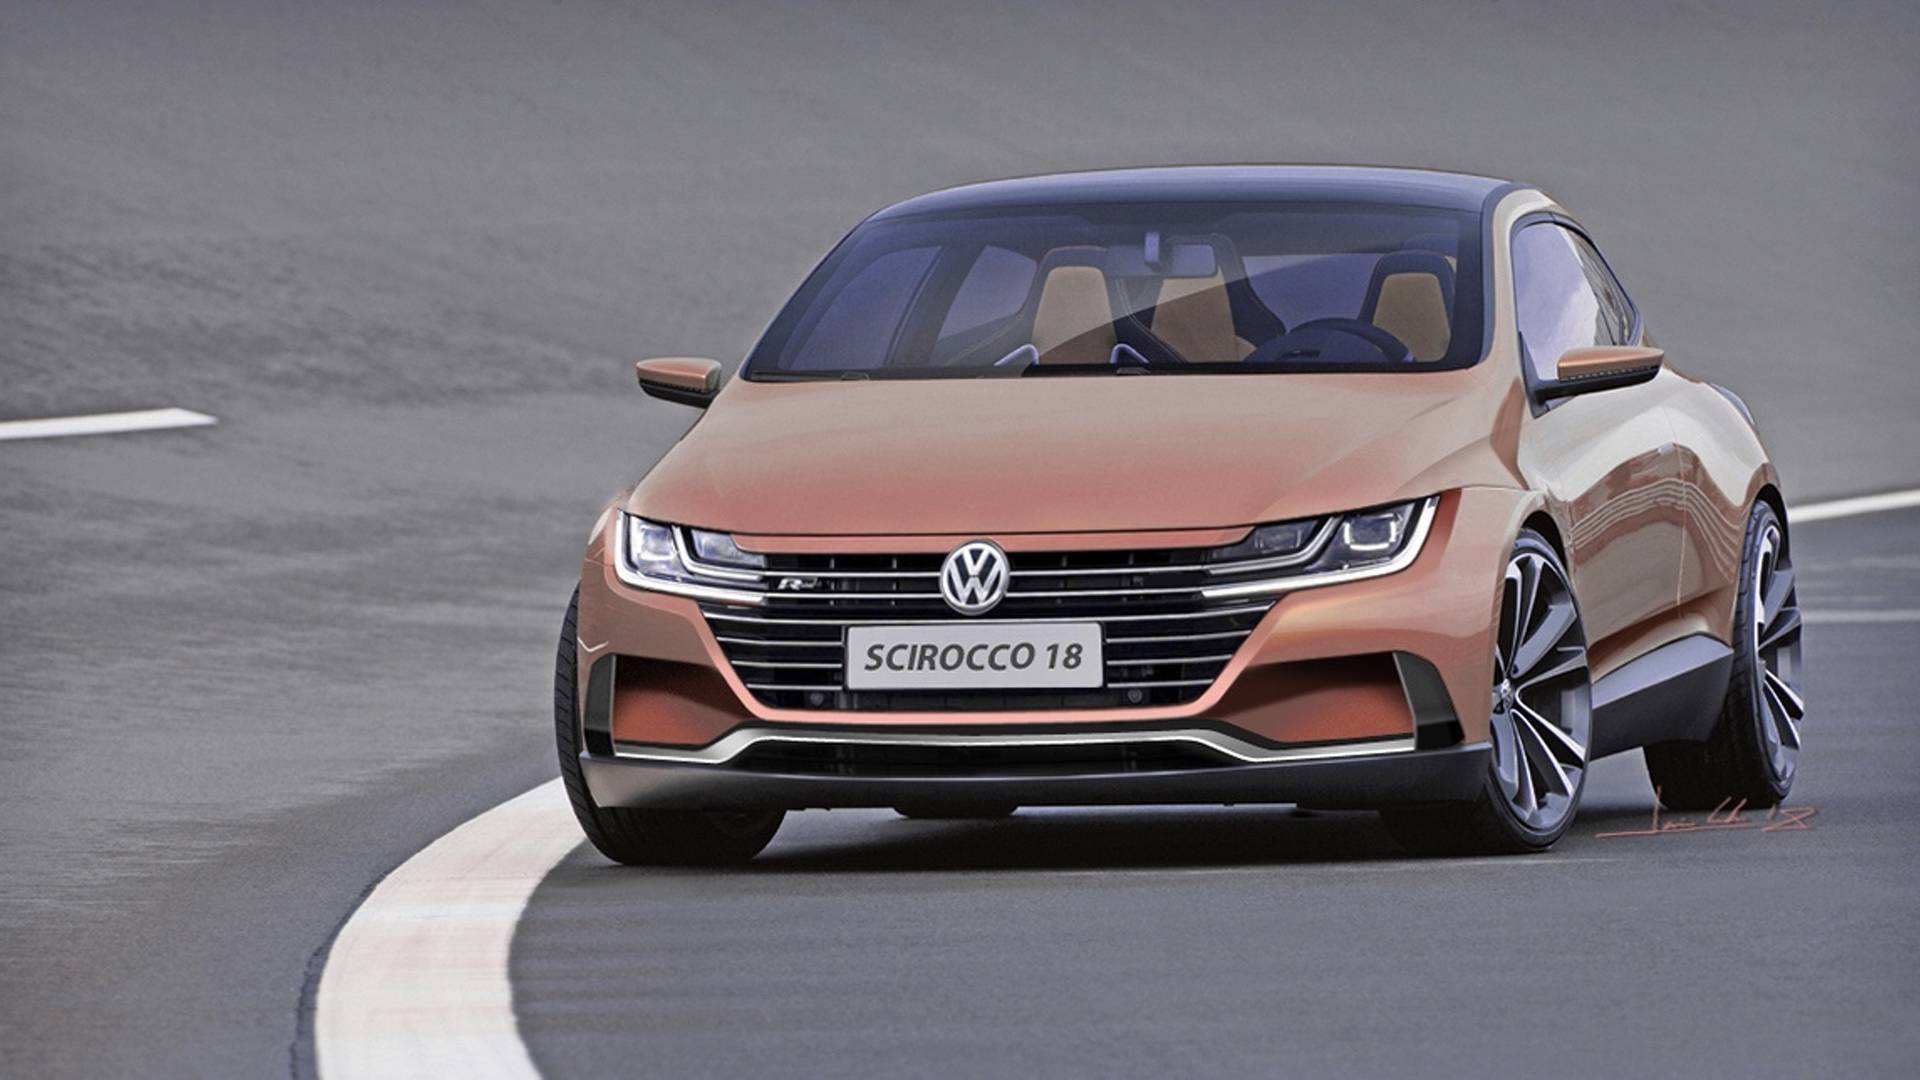 16 New Vw Scirocco 2019 Configurations by Vw Scirocco 2019